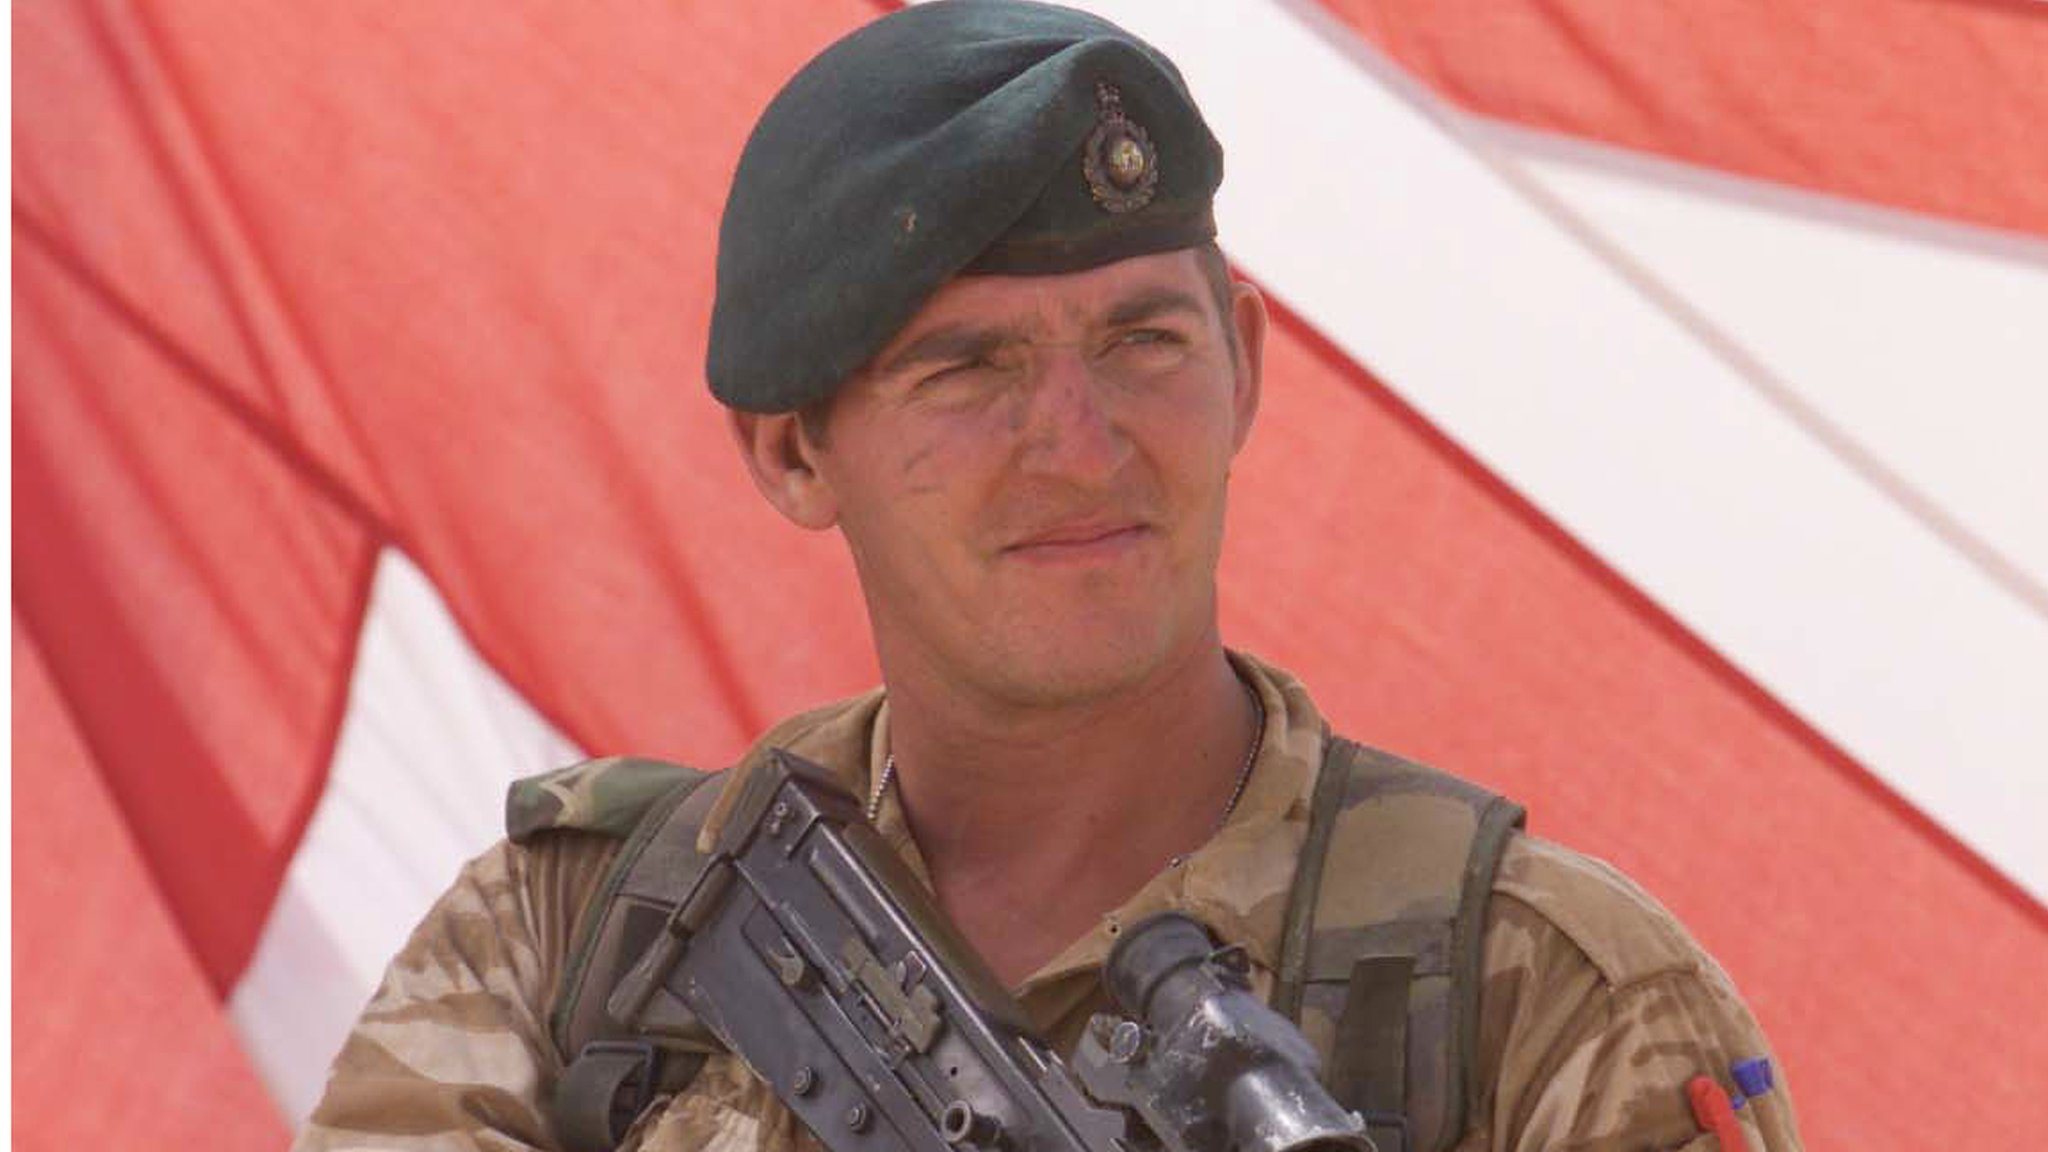 Royal Marine Alexander Blackman to be free in weeks after new sentence